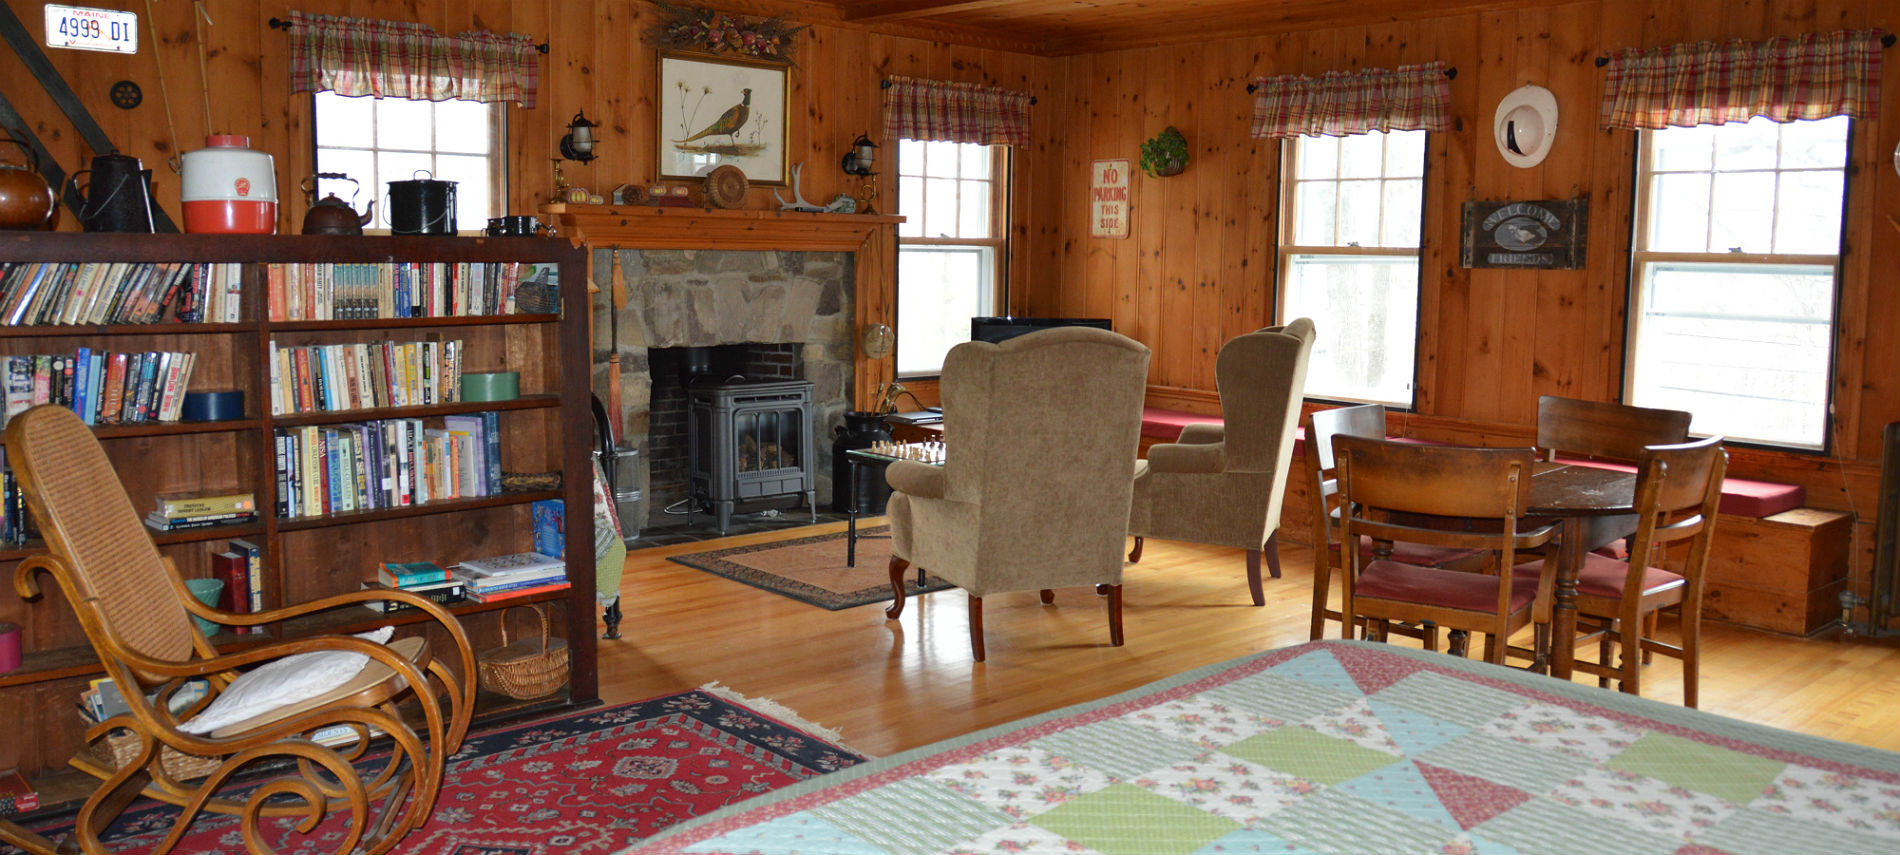 Cozy cabin-like room with a fireplace, small dining table, two wingback chairs and a bookcase.